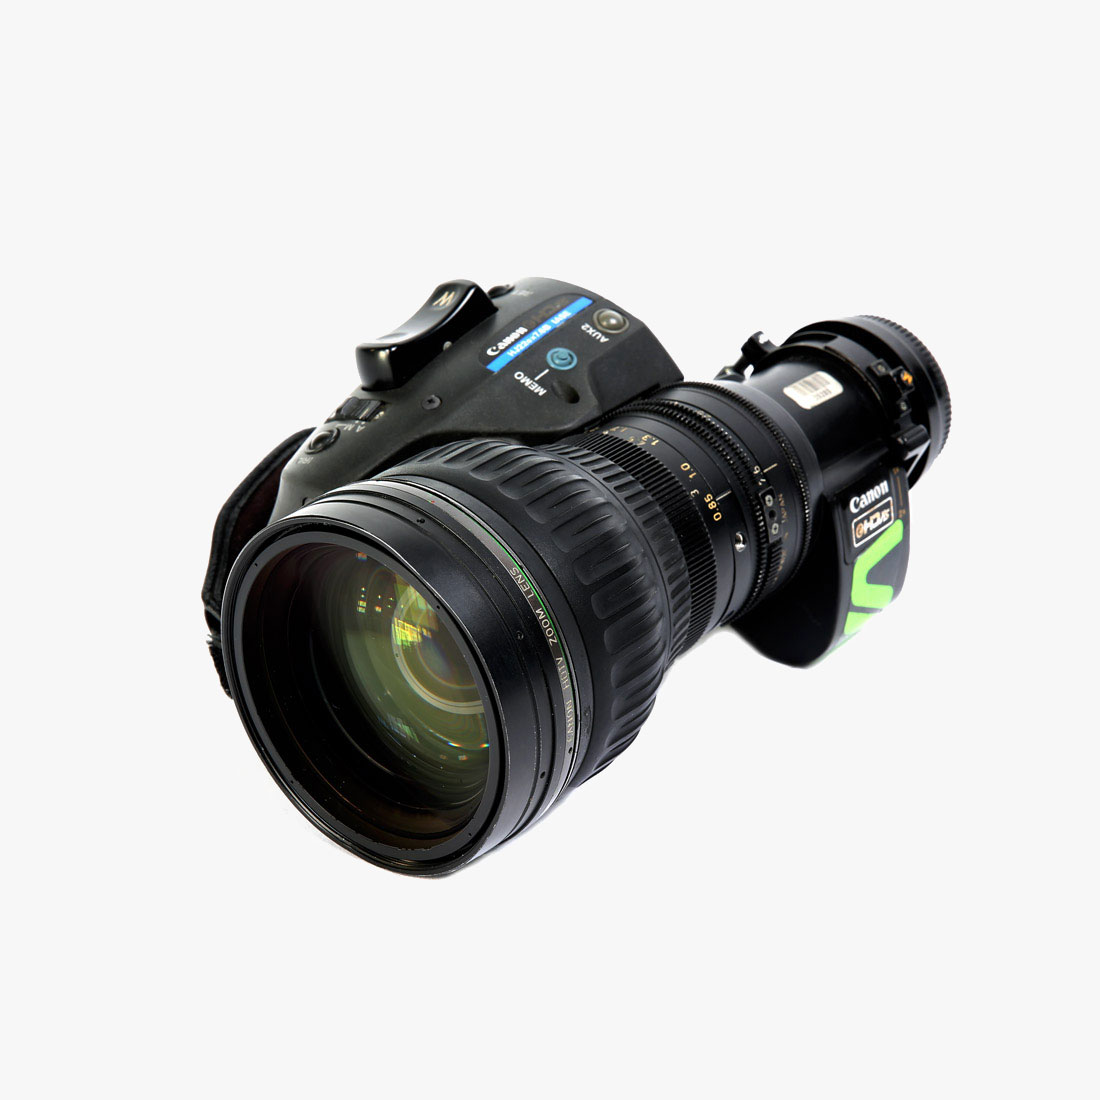 b4-hd-zoom-hire